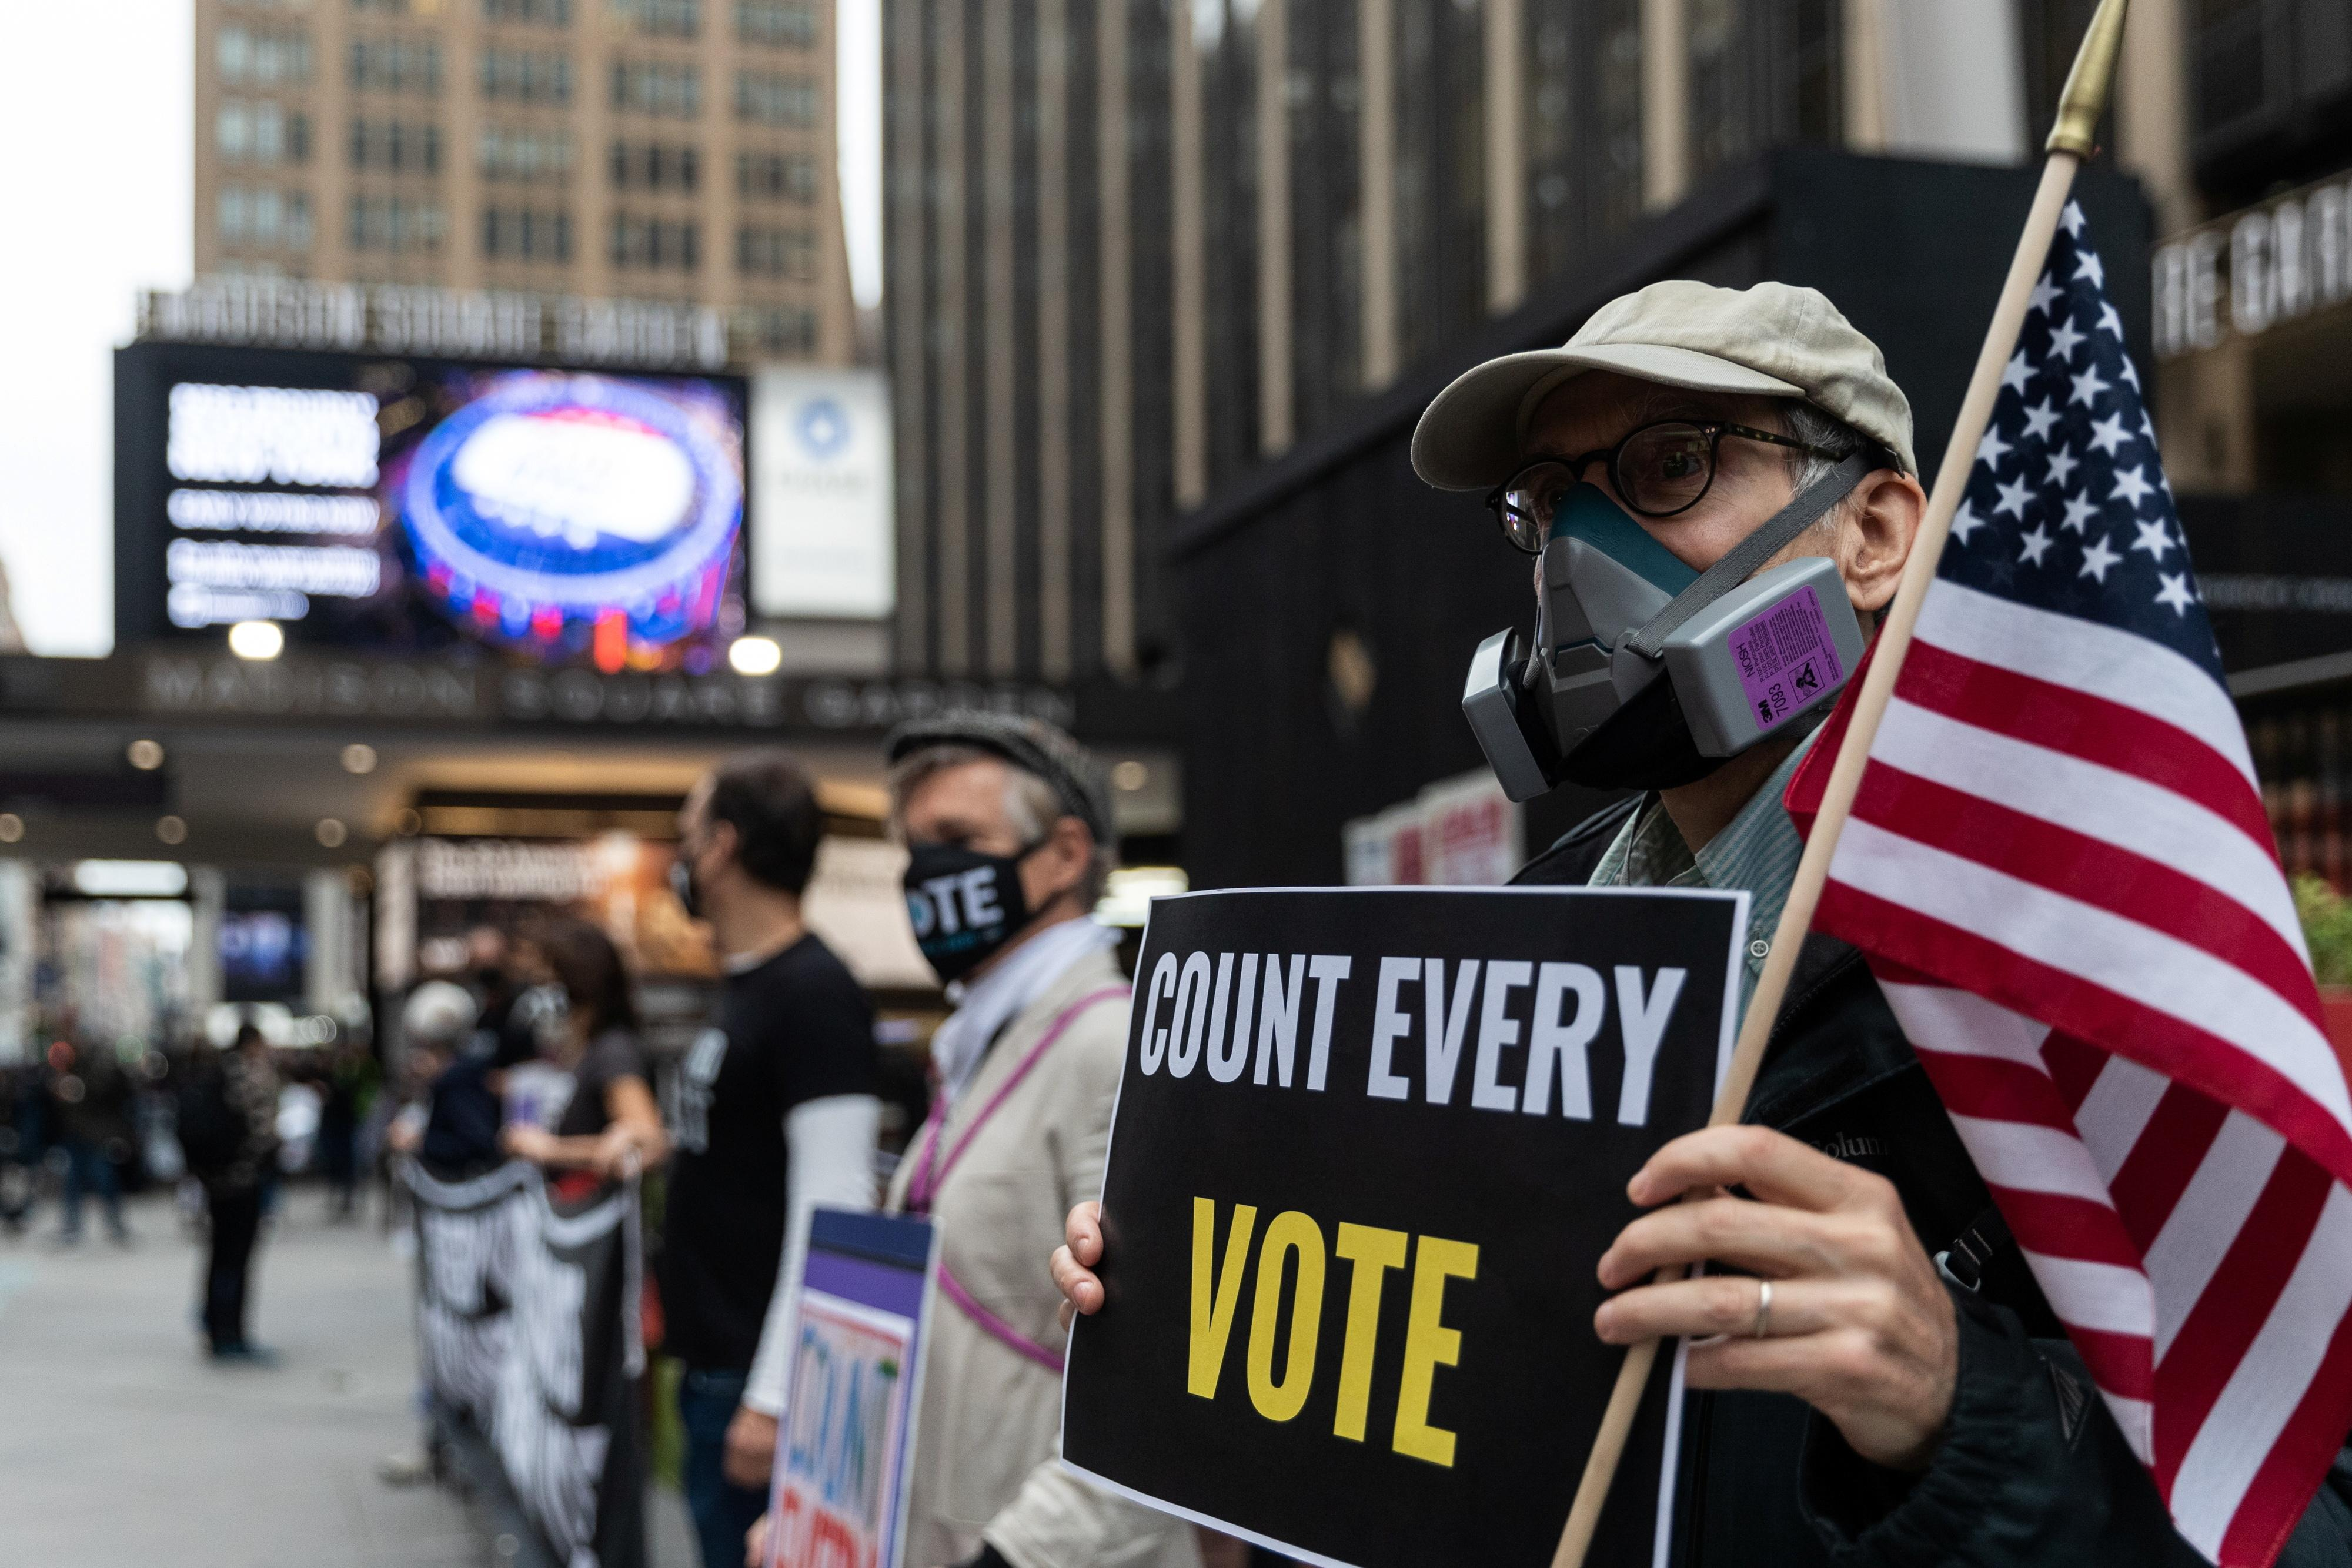 Pandemic turns Americans into voting rights activists